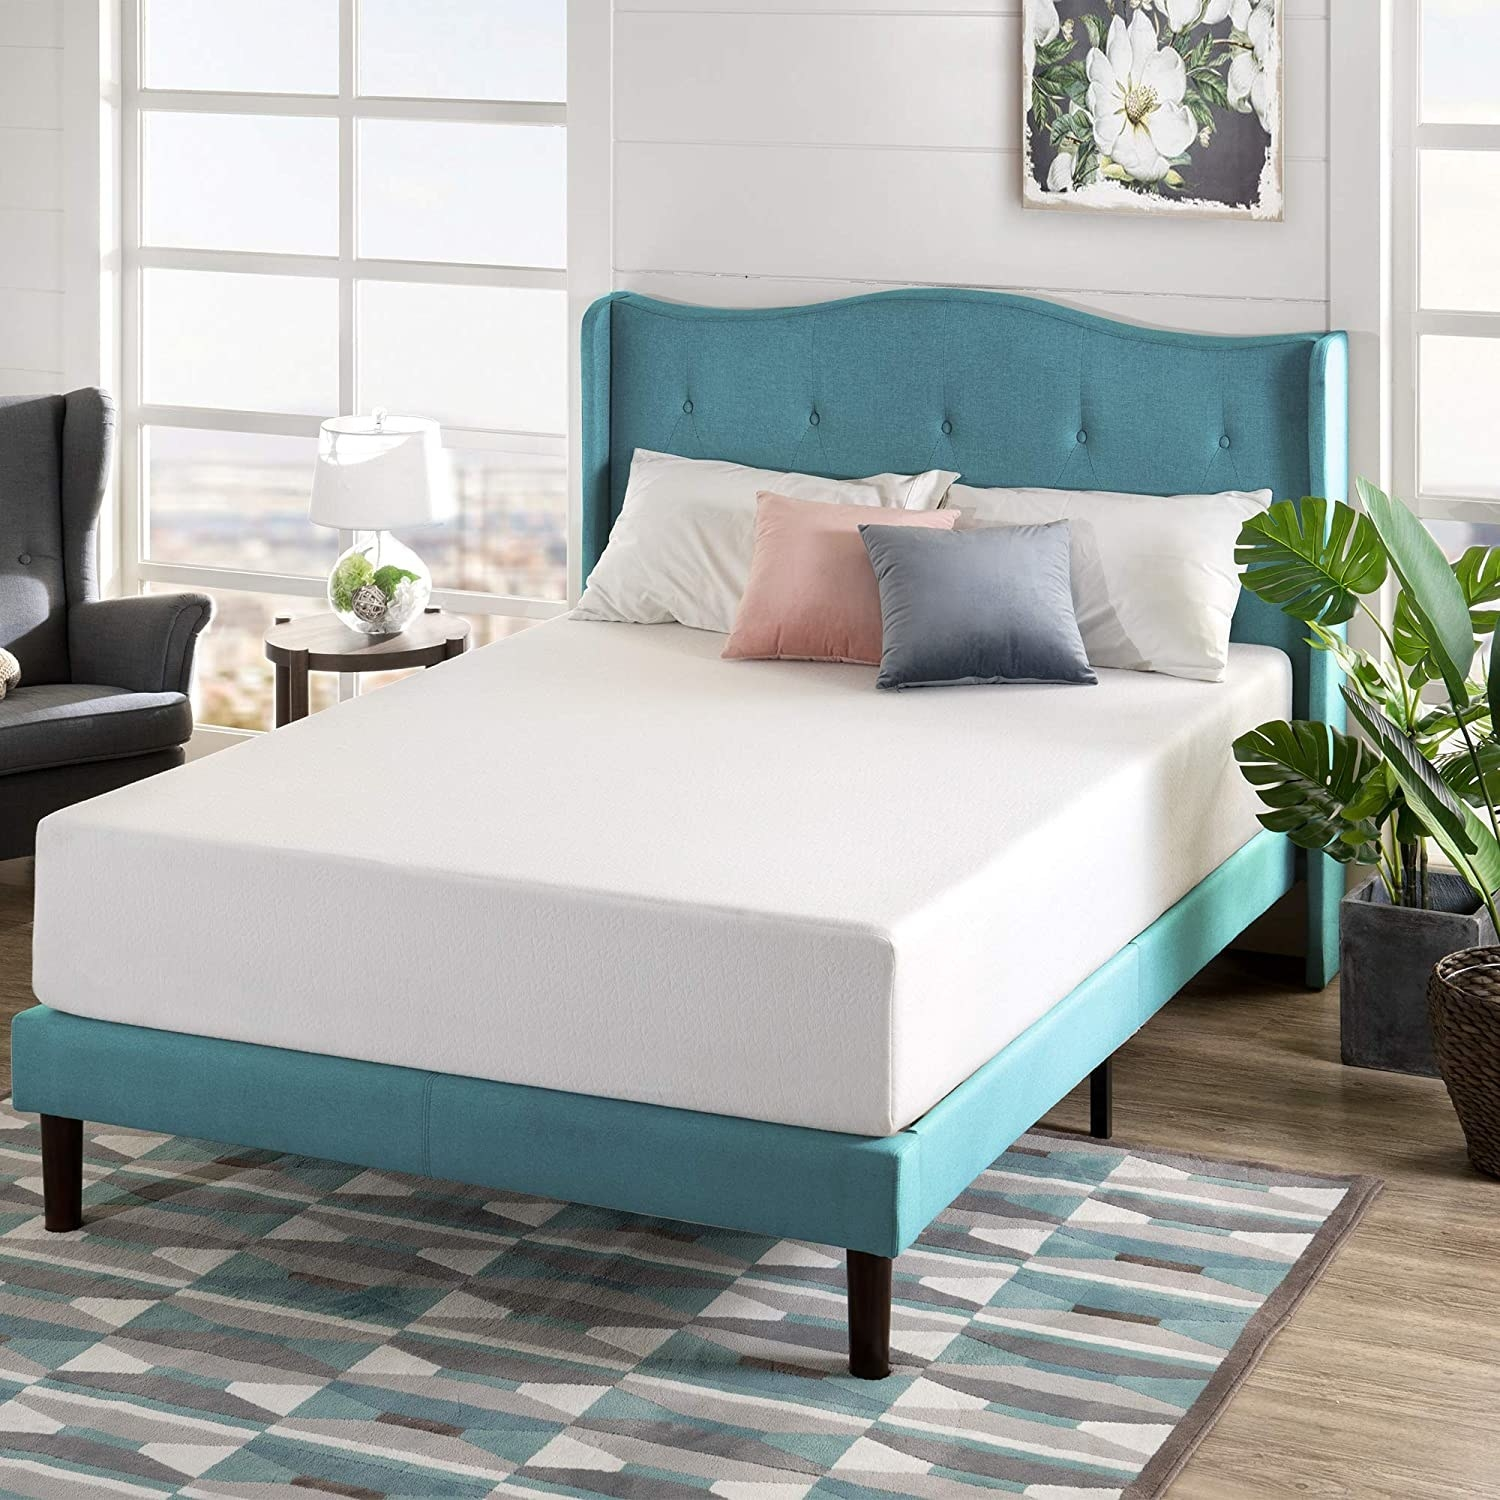 A mattress on a bedframe with pillows on top